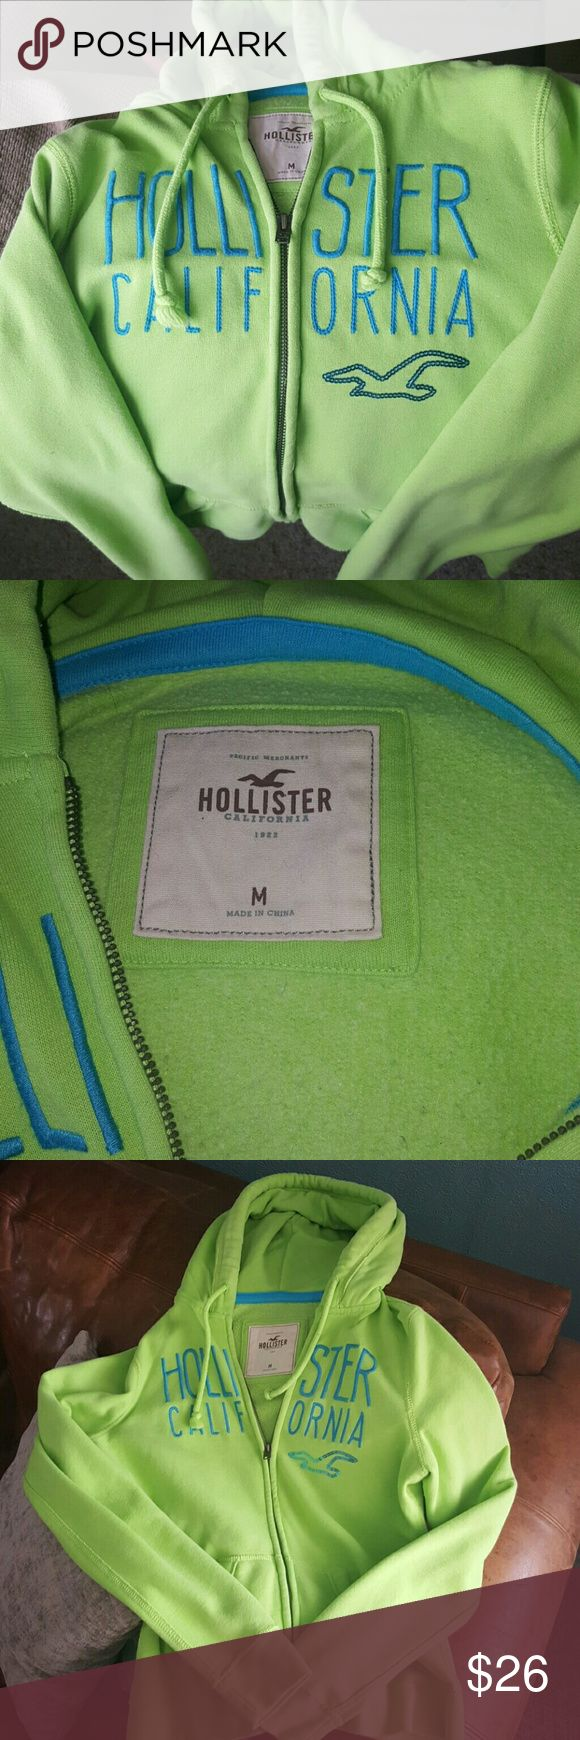 Hollister Co. Zip-up Hoodie Beautiful bright green women's zip up! A cozy and comfortable size Medium, worn a handful of times.  **Has a little white paint spot on the back towards bottom of shirt. But besides that, it is in like-new condition! :) From a smoke-free home Hollister Tops Sweatshirts & Hoodies